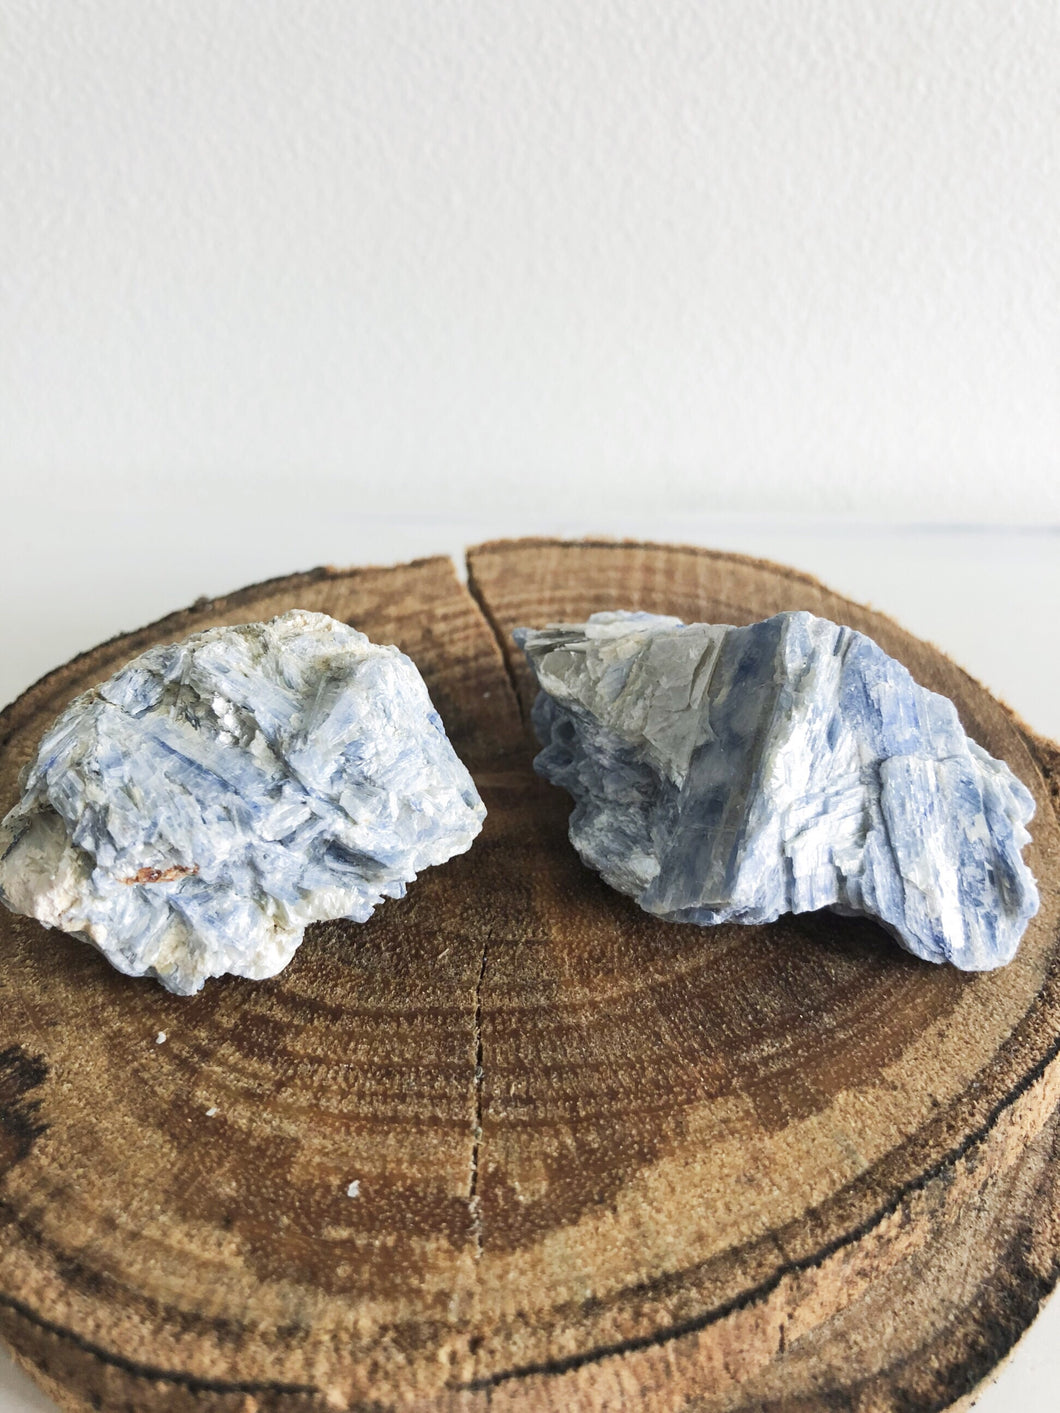 Kyanite- small rough pieces